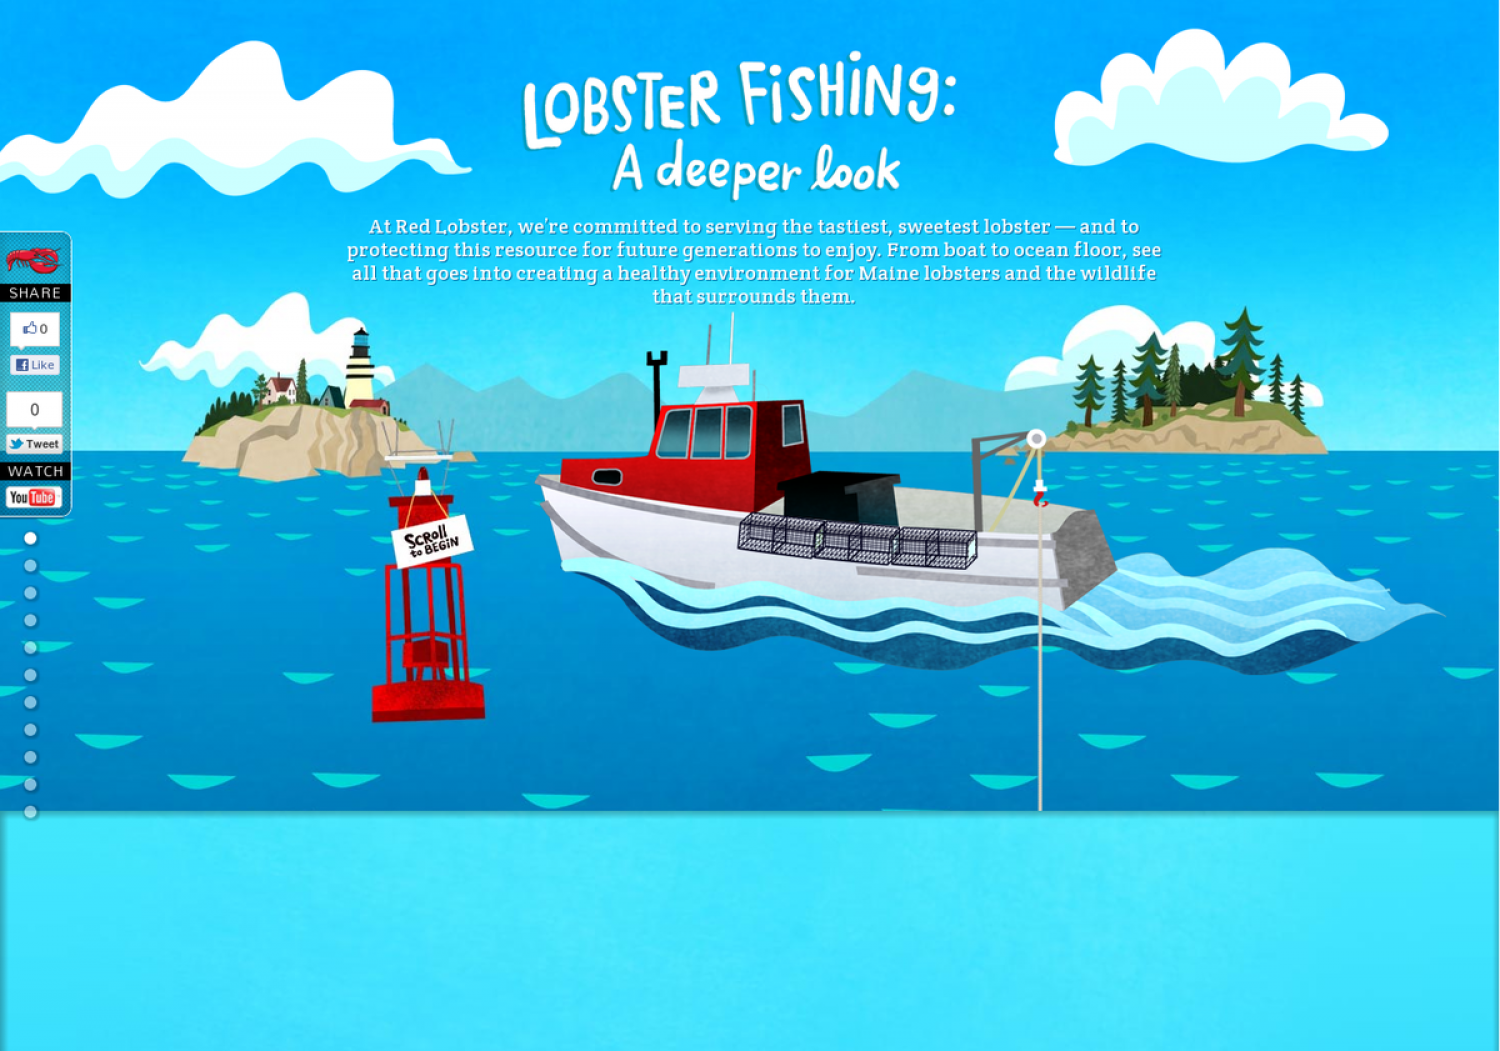 Lobster Fishing: A Deeper Look Infographic